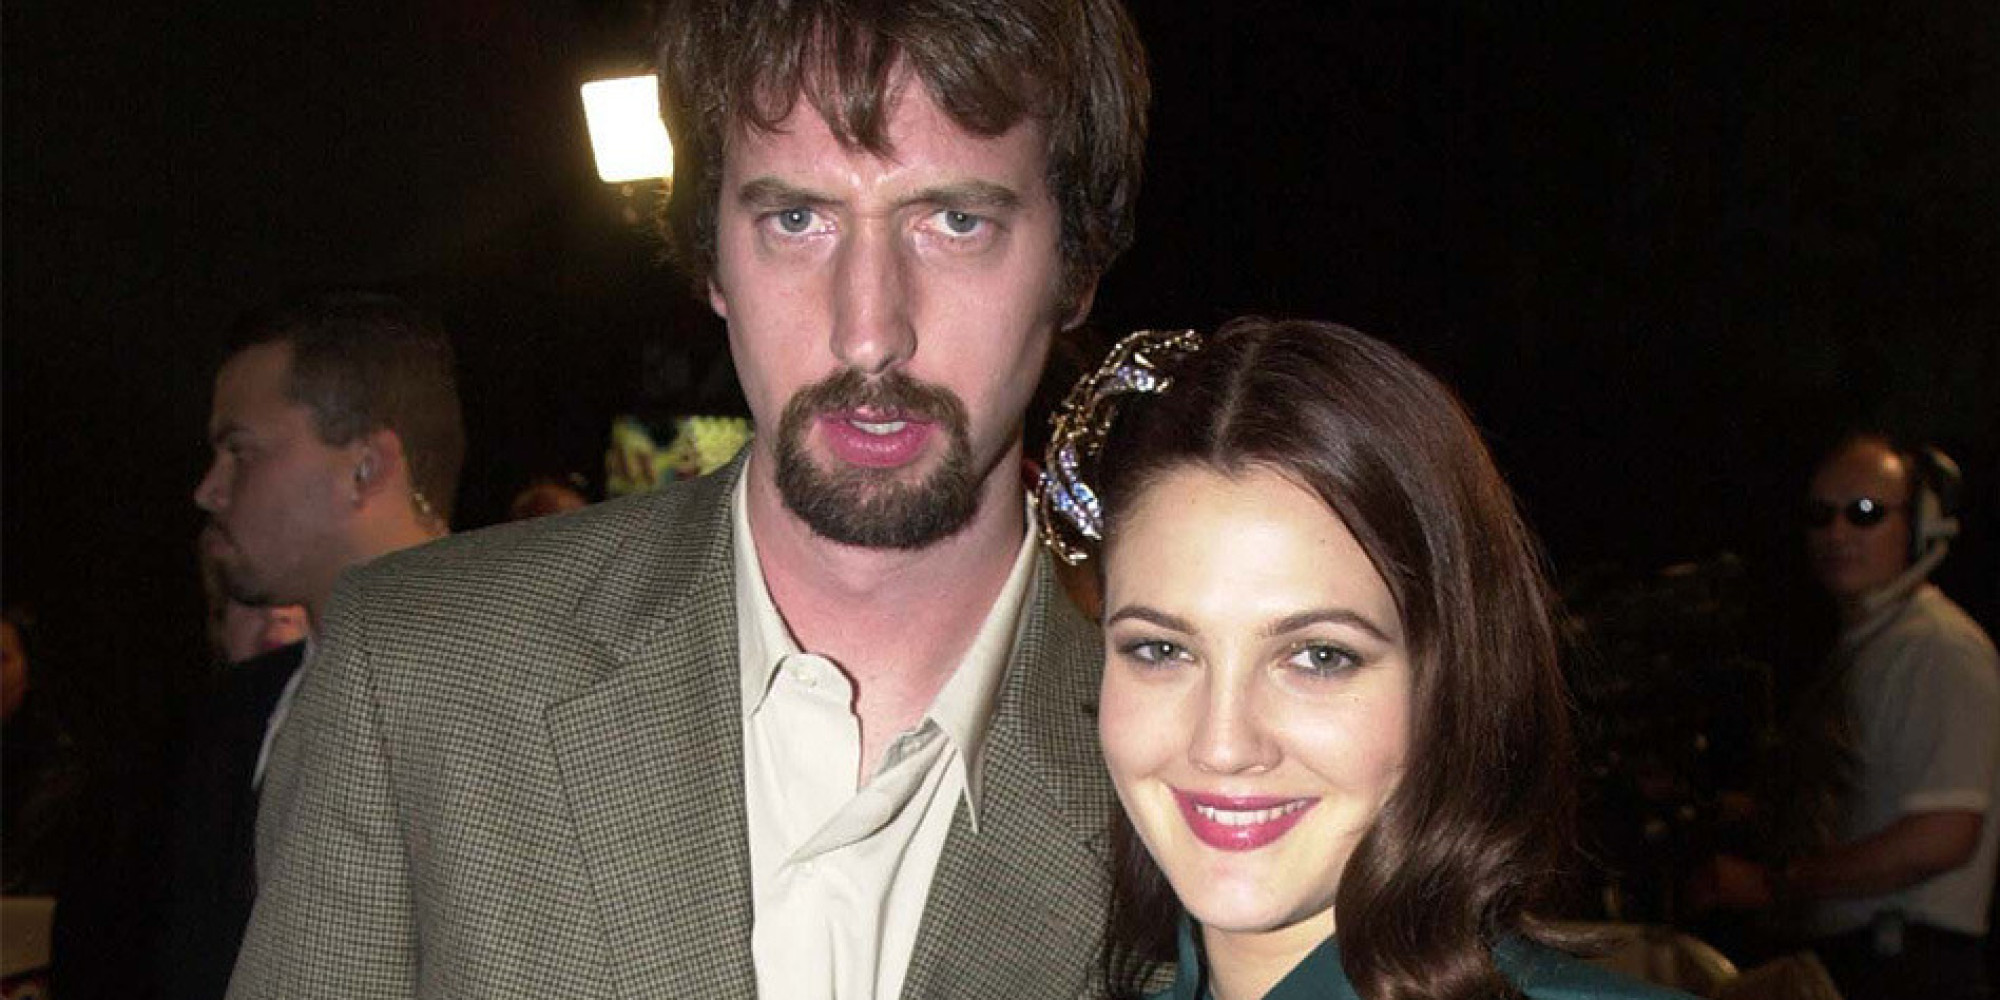 Drew Barrymore and Tom Green – 4 months